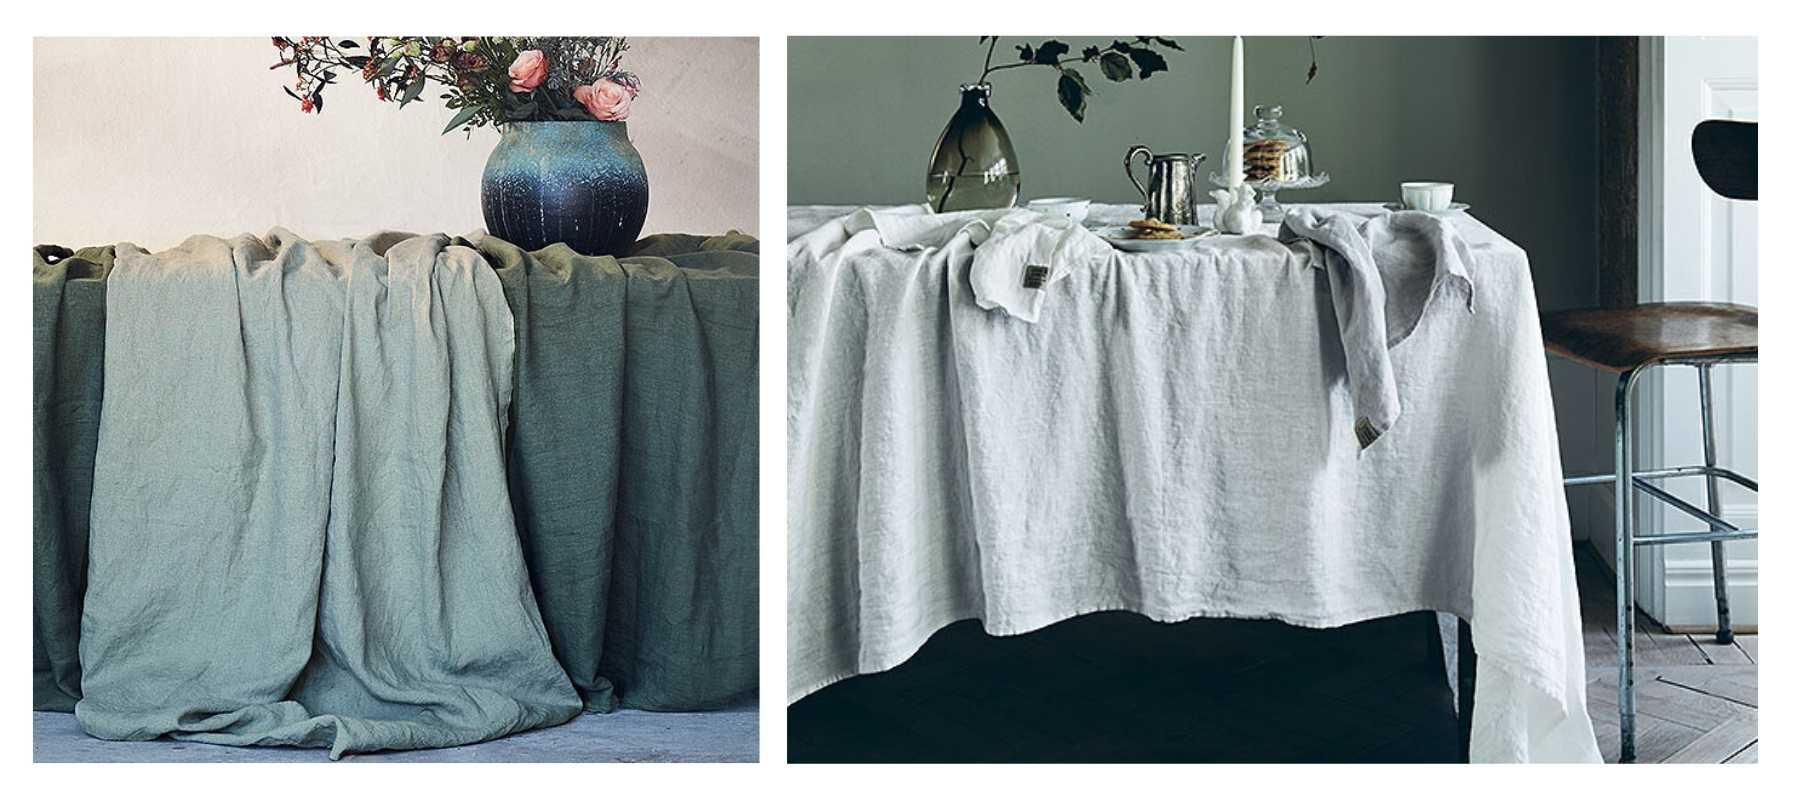 Crumpled white and grey linen table cloths layered over table